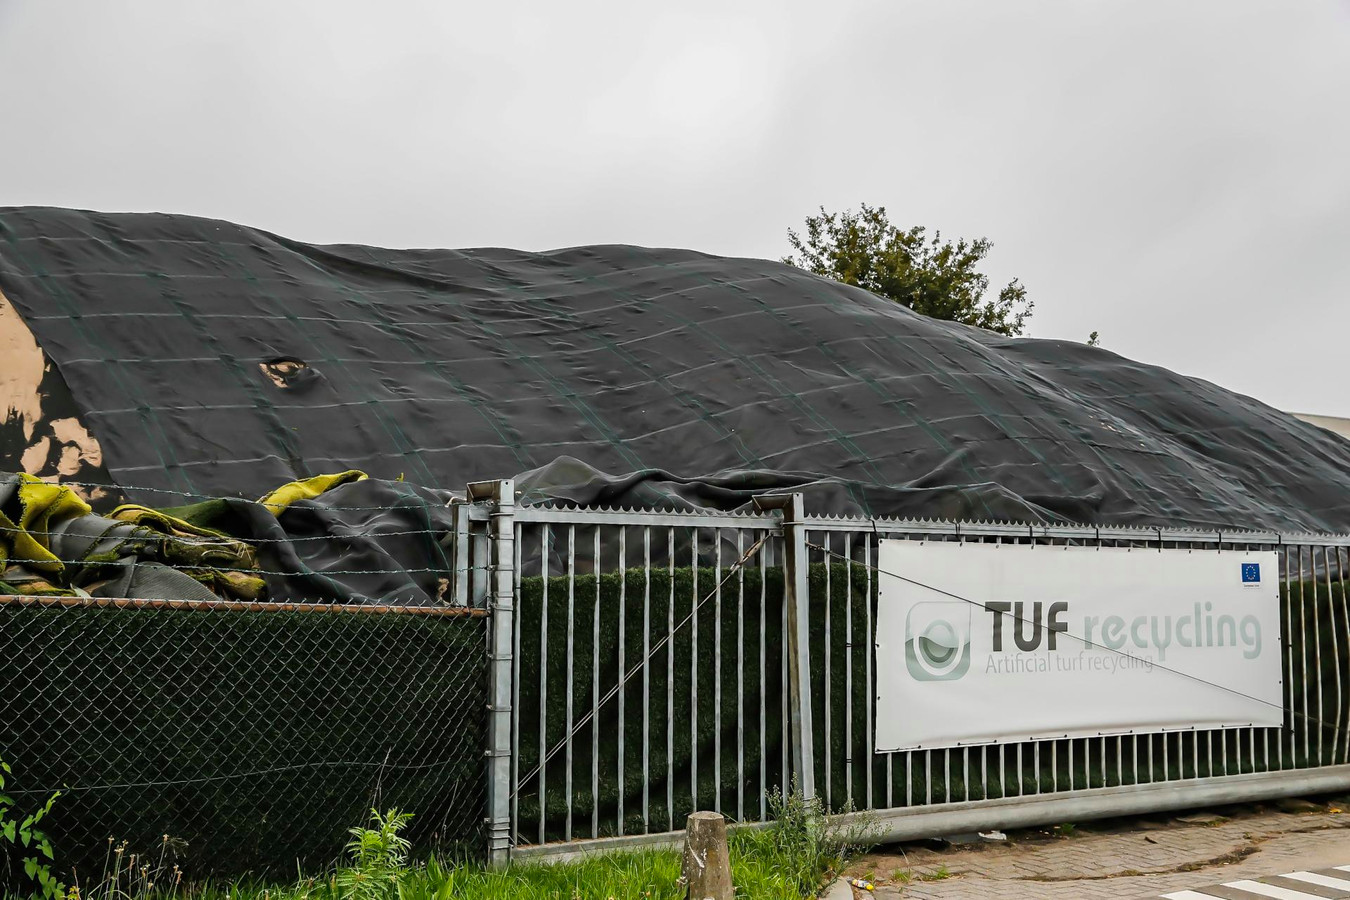 Tuf Recycling Dongen